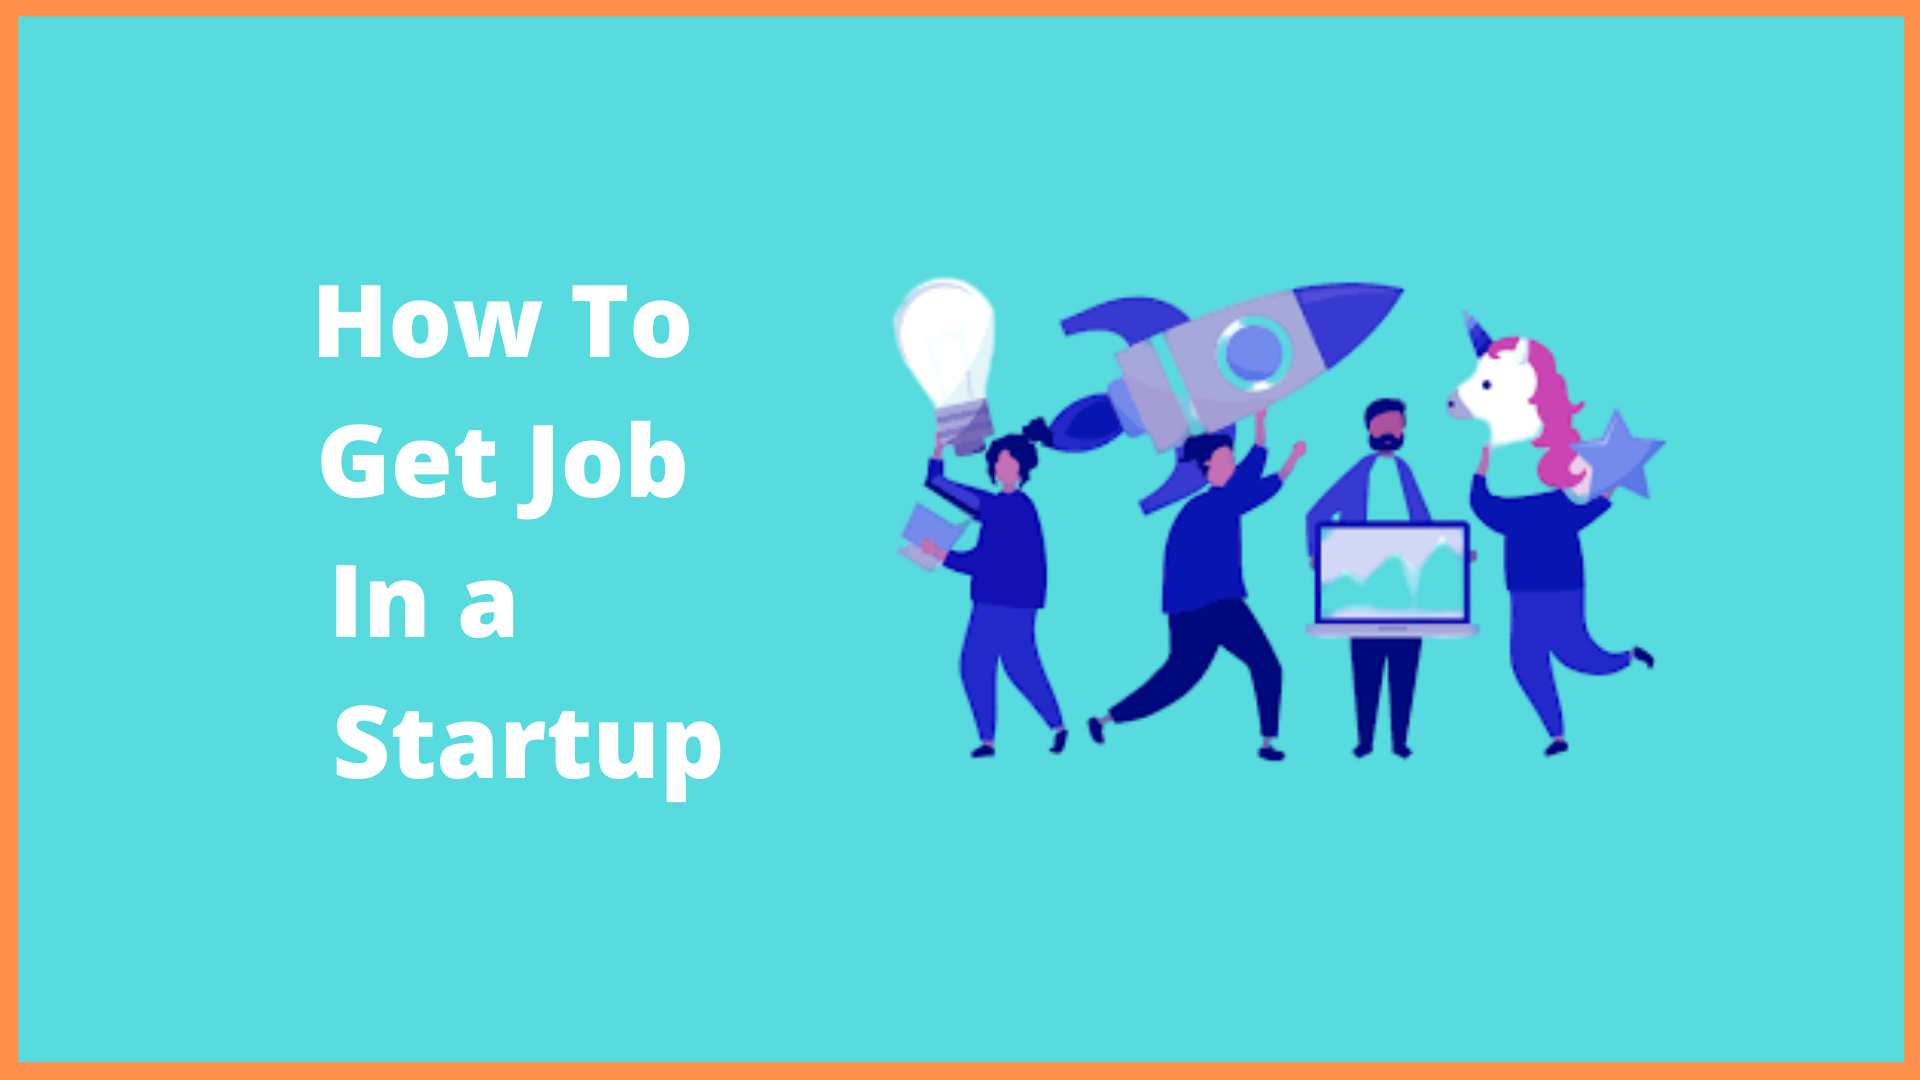 Smart Strategies To Get Job In a Startup Company